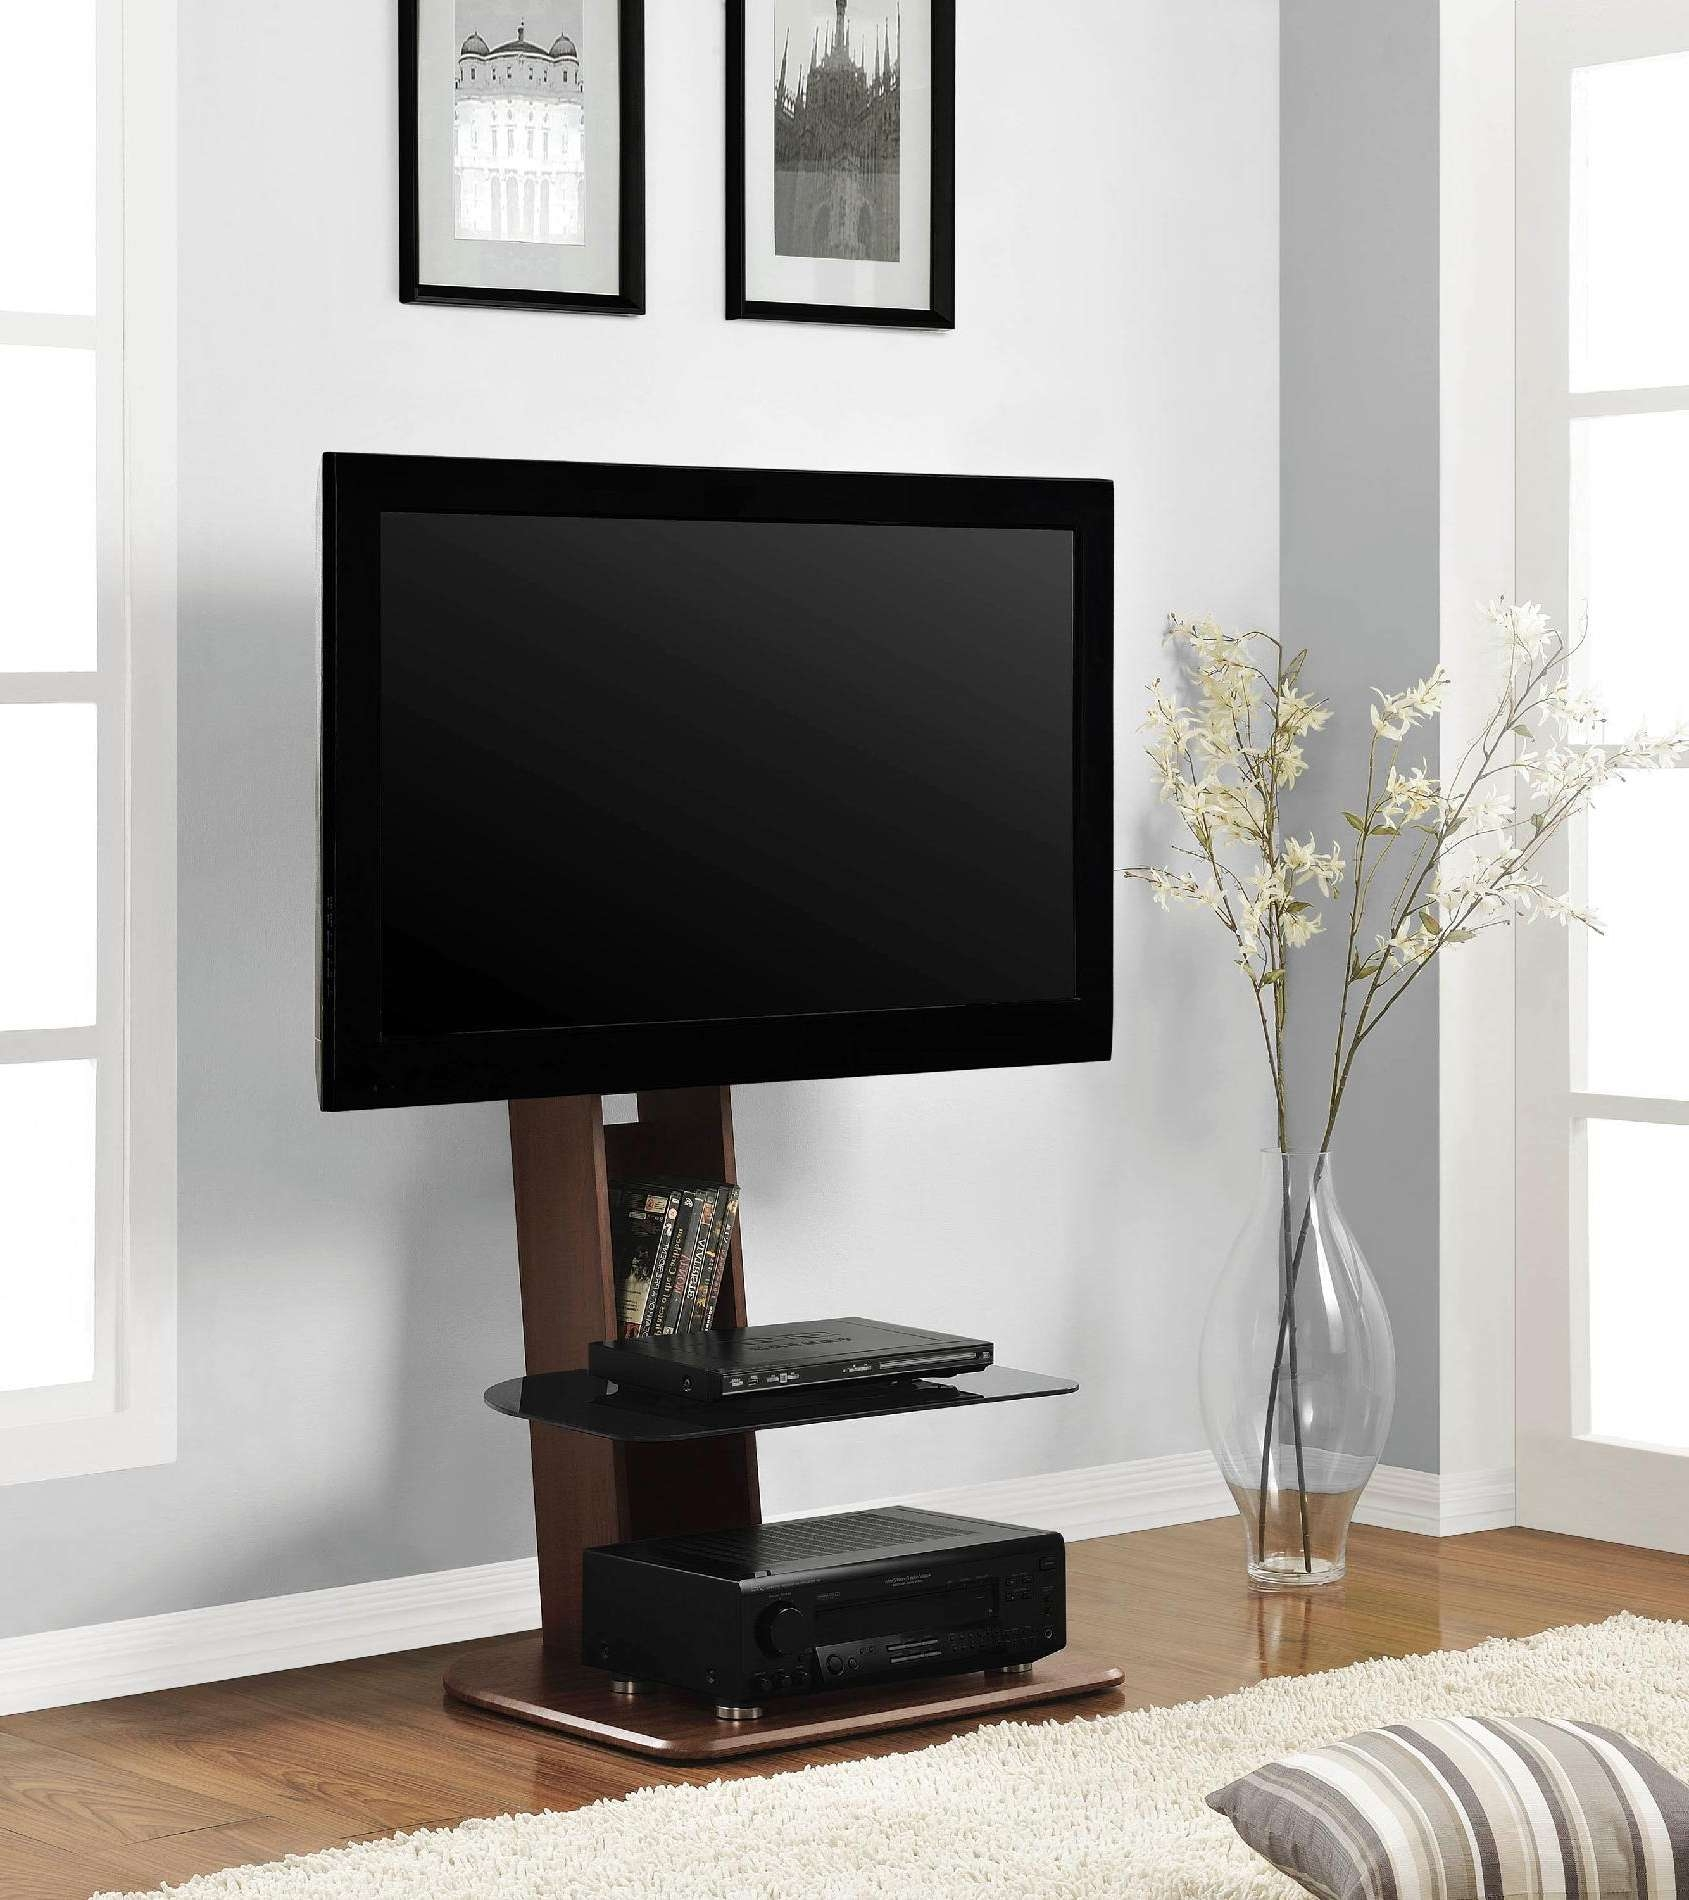 Minimalist Brown Walnut Wood Flat Screen Tv Stand With Black Intended For Acrylic Tv Stands (View 13 of 15)